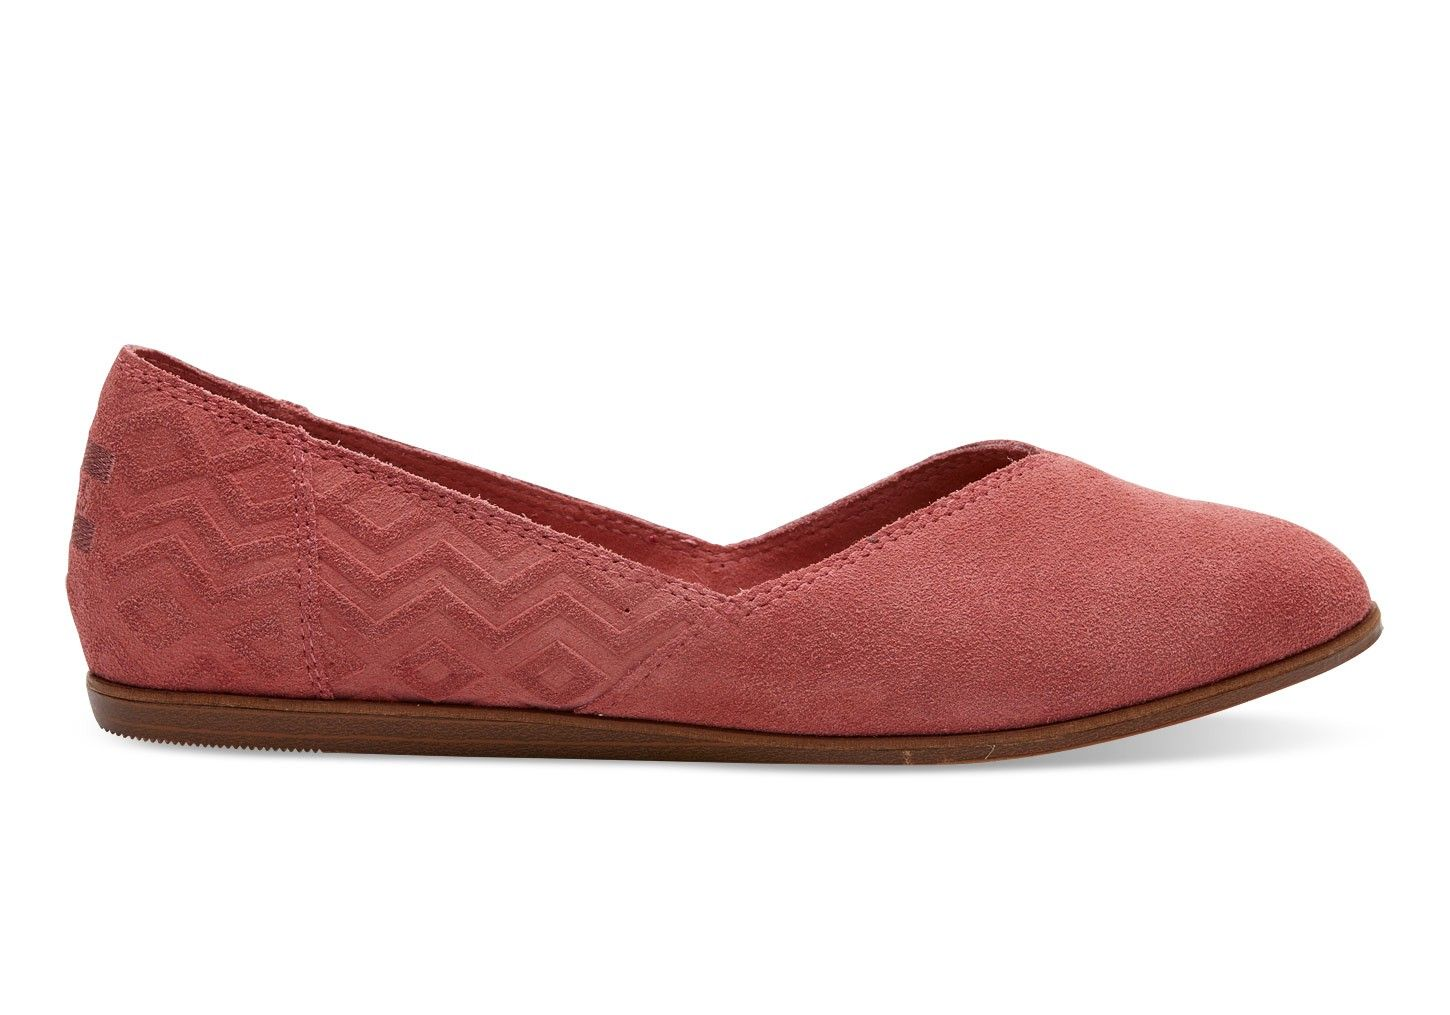 b2d43355409d TOMS Toms Faded Rose Suede Diamond Embossed Women S Jutti Flats Shoes.   toms  shoes  all